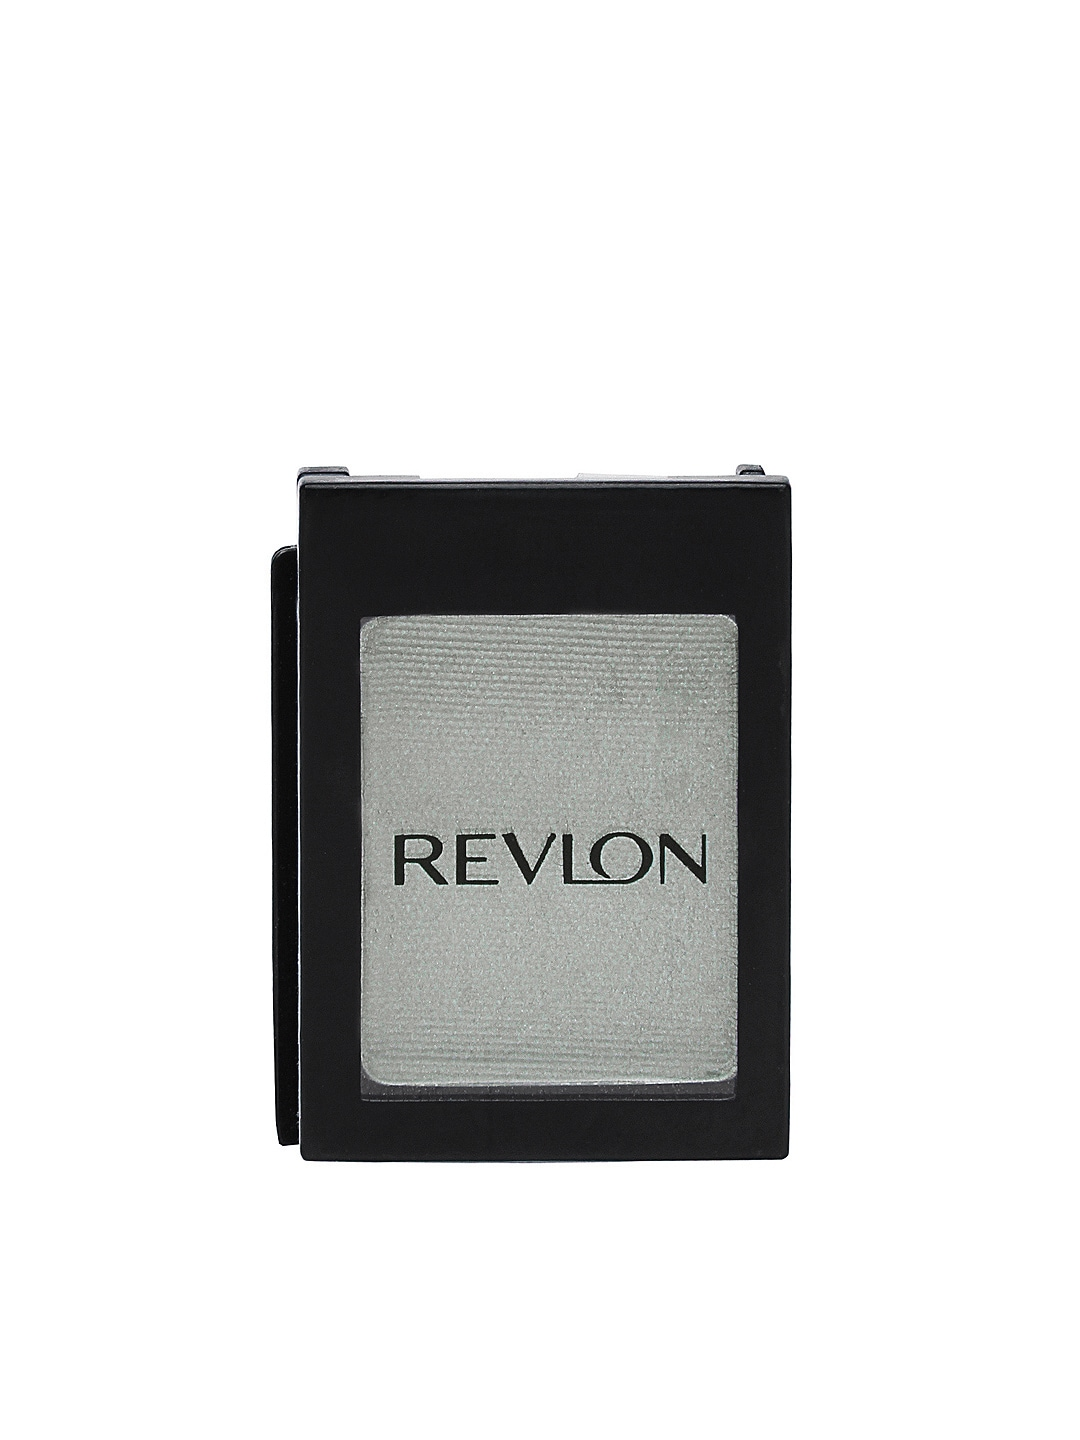 Revlon Colorstay Shadow Links Gun Metal Eye Shadow 170 image